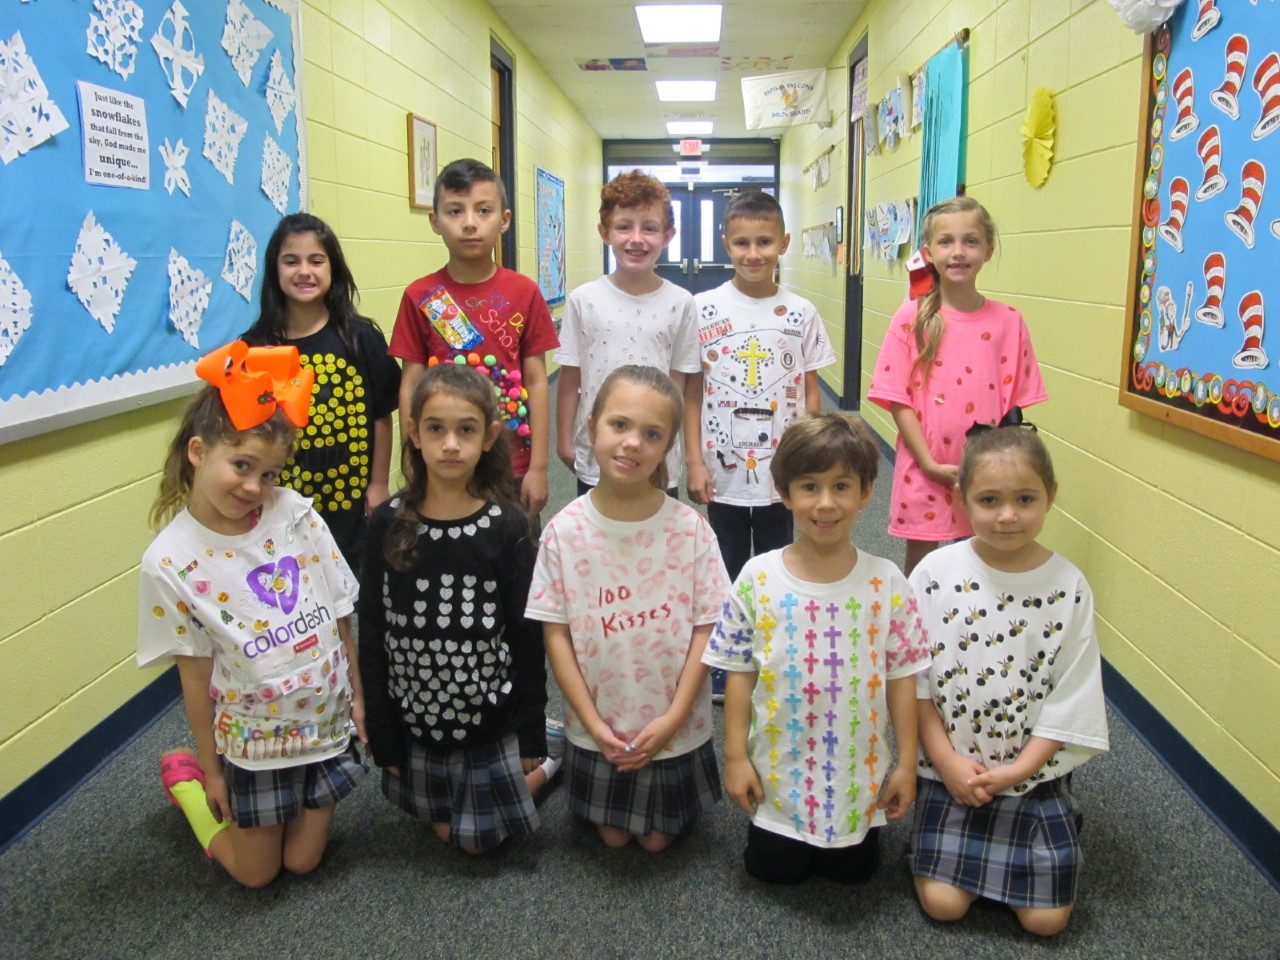 2nd Grade Celebrates with 100 things on a T-Shirt